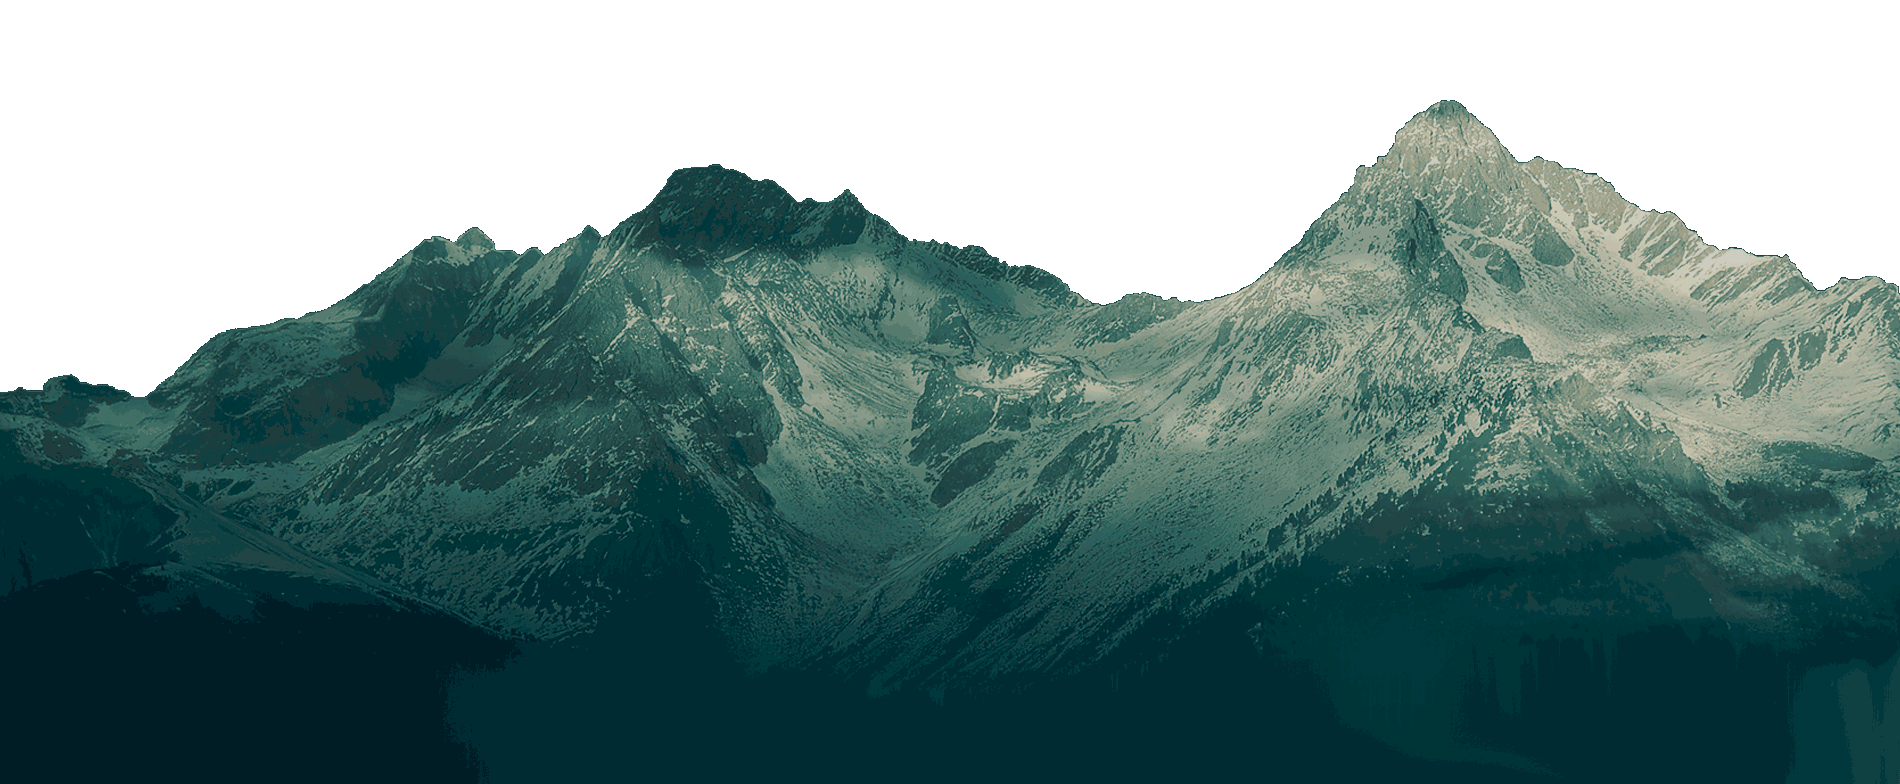 Mountains PNG HD - 120441